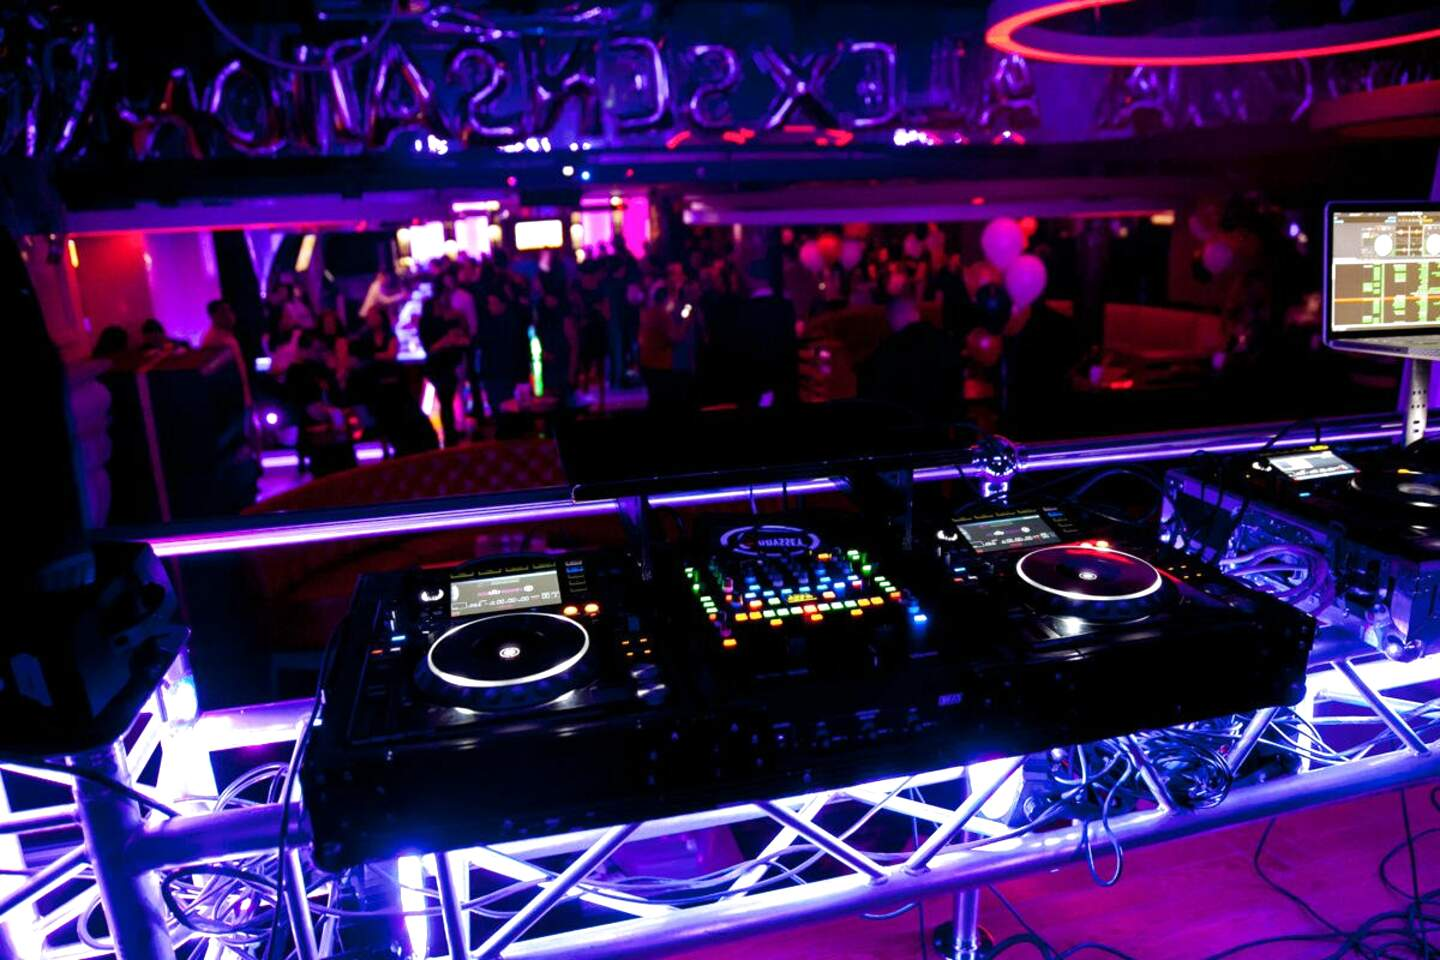 dj booth for sale